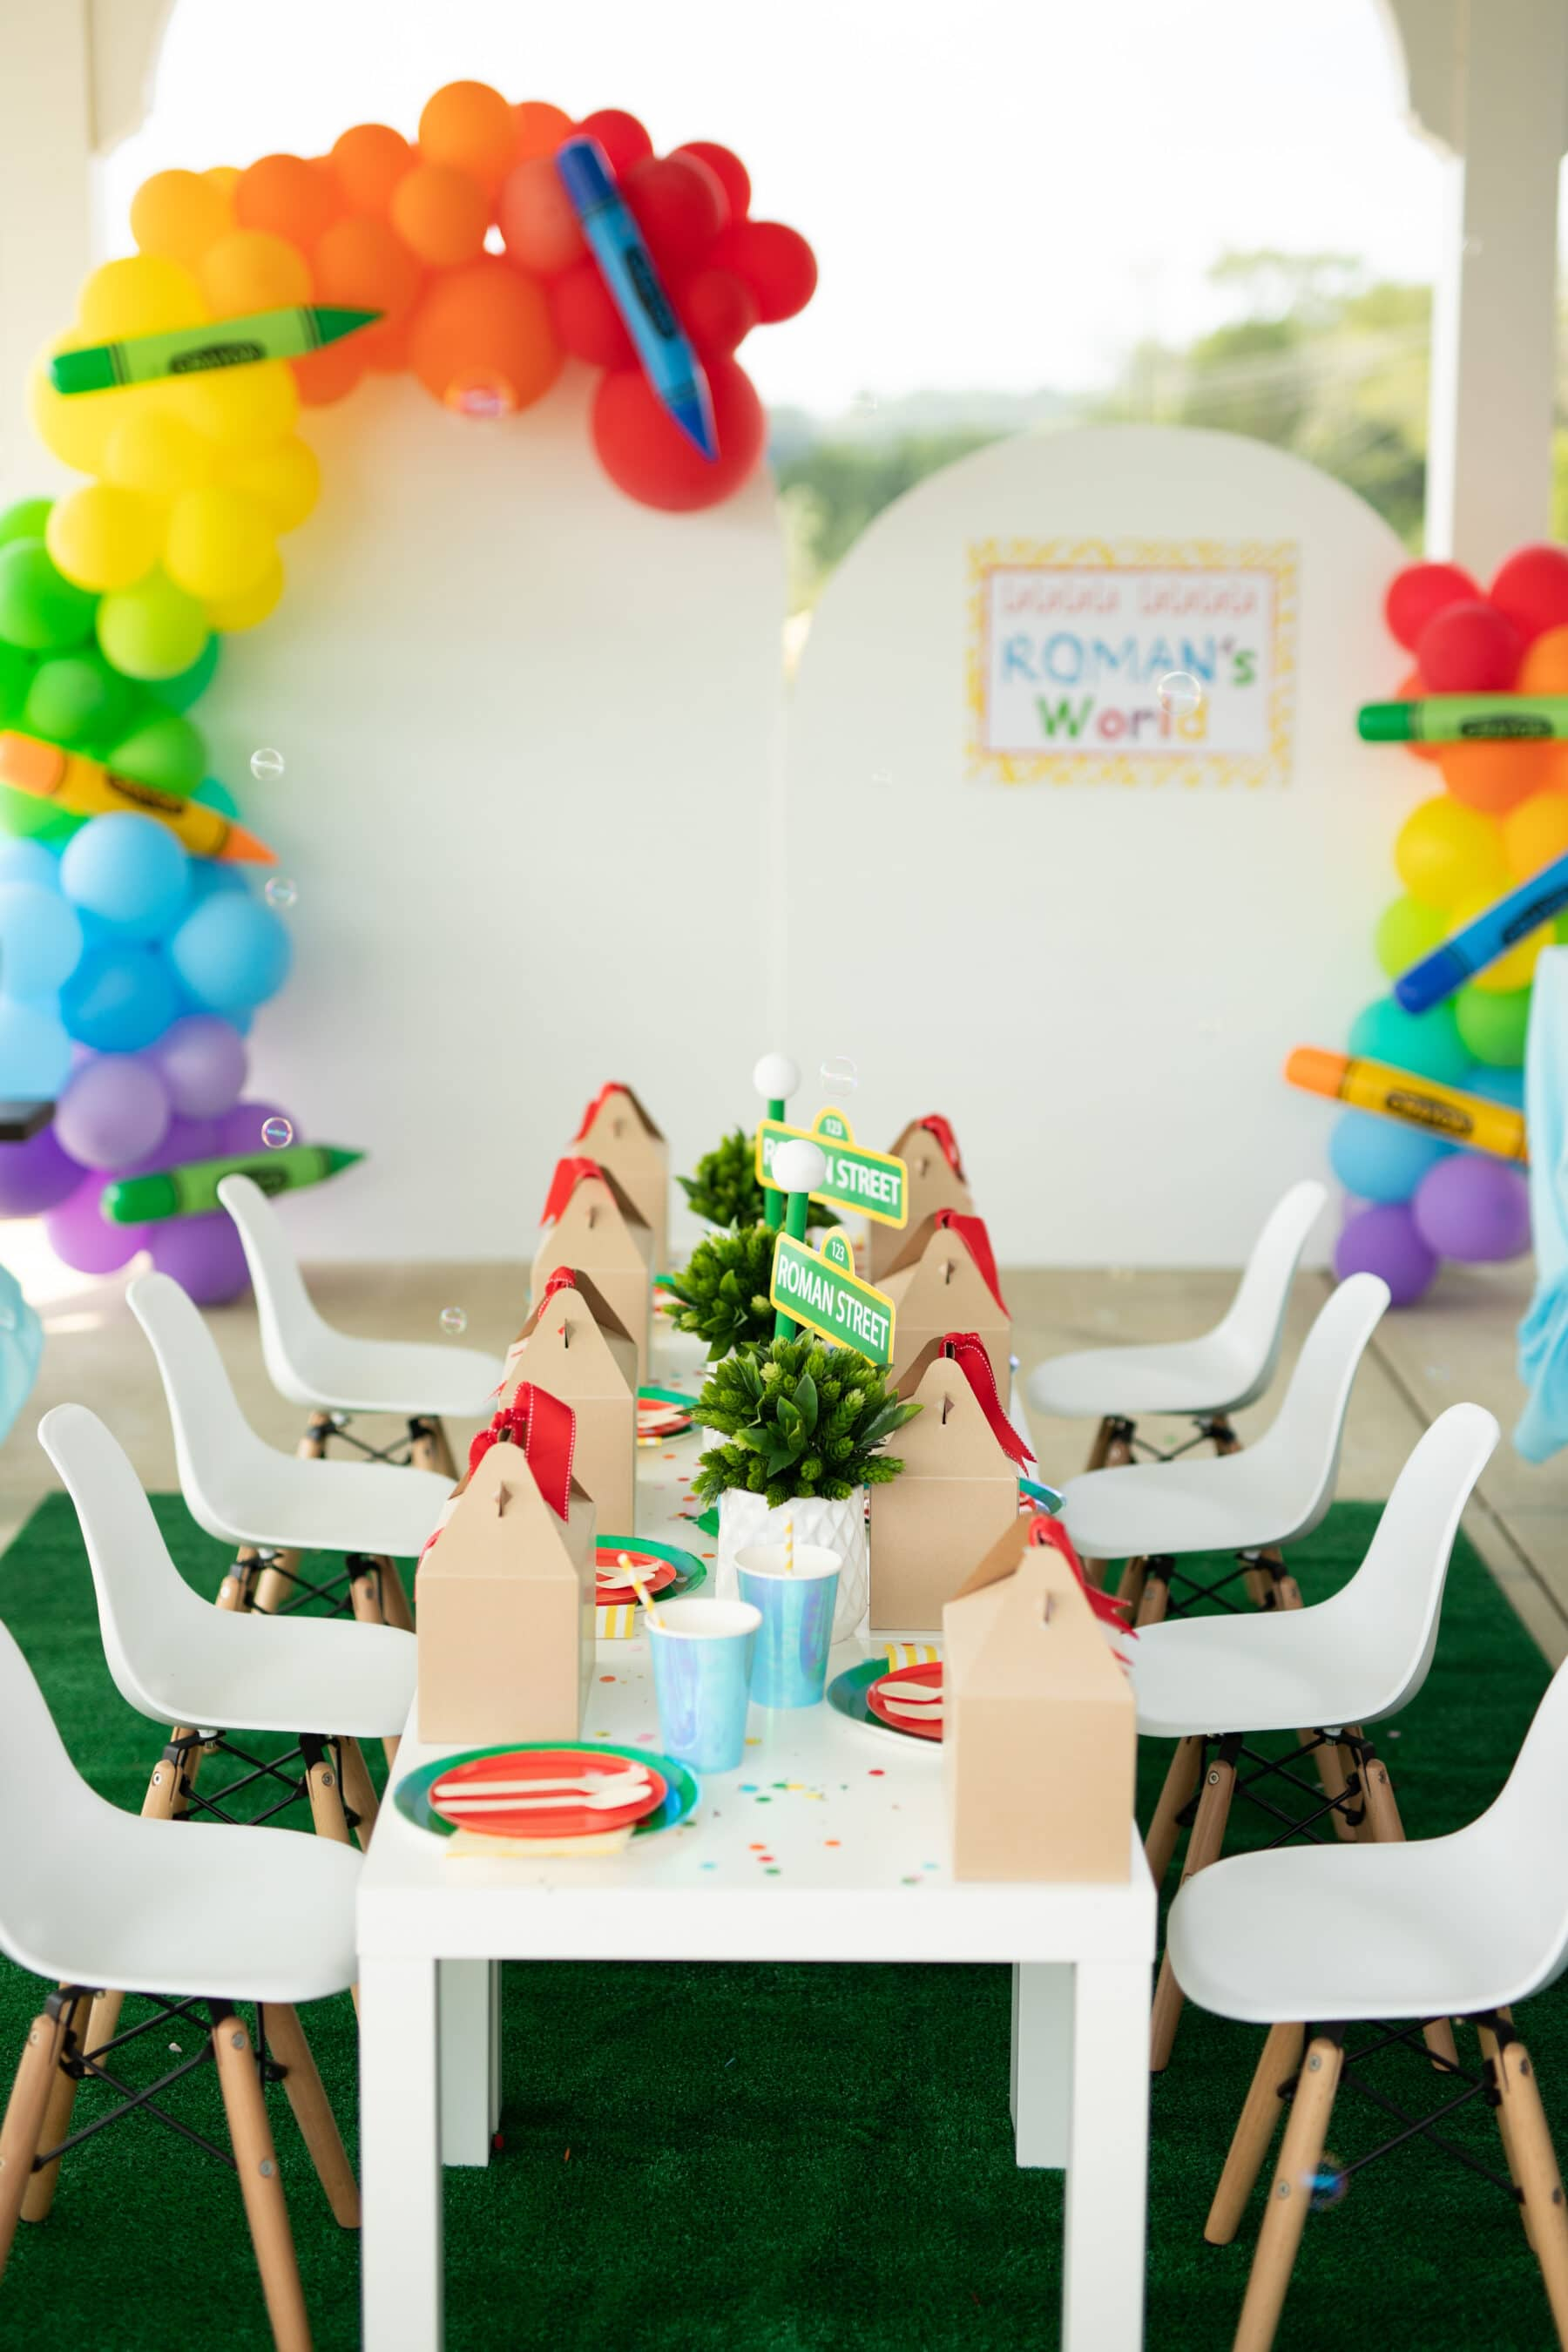 Sesame Street Themed Birthday Party featured on Nashville Baby Guide